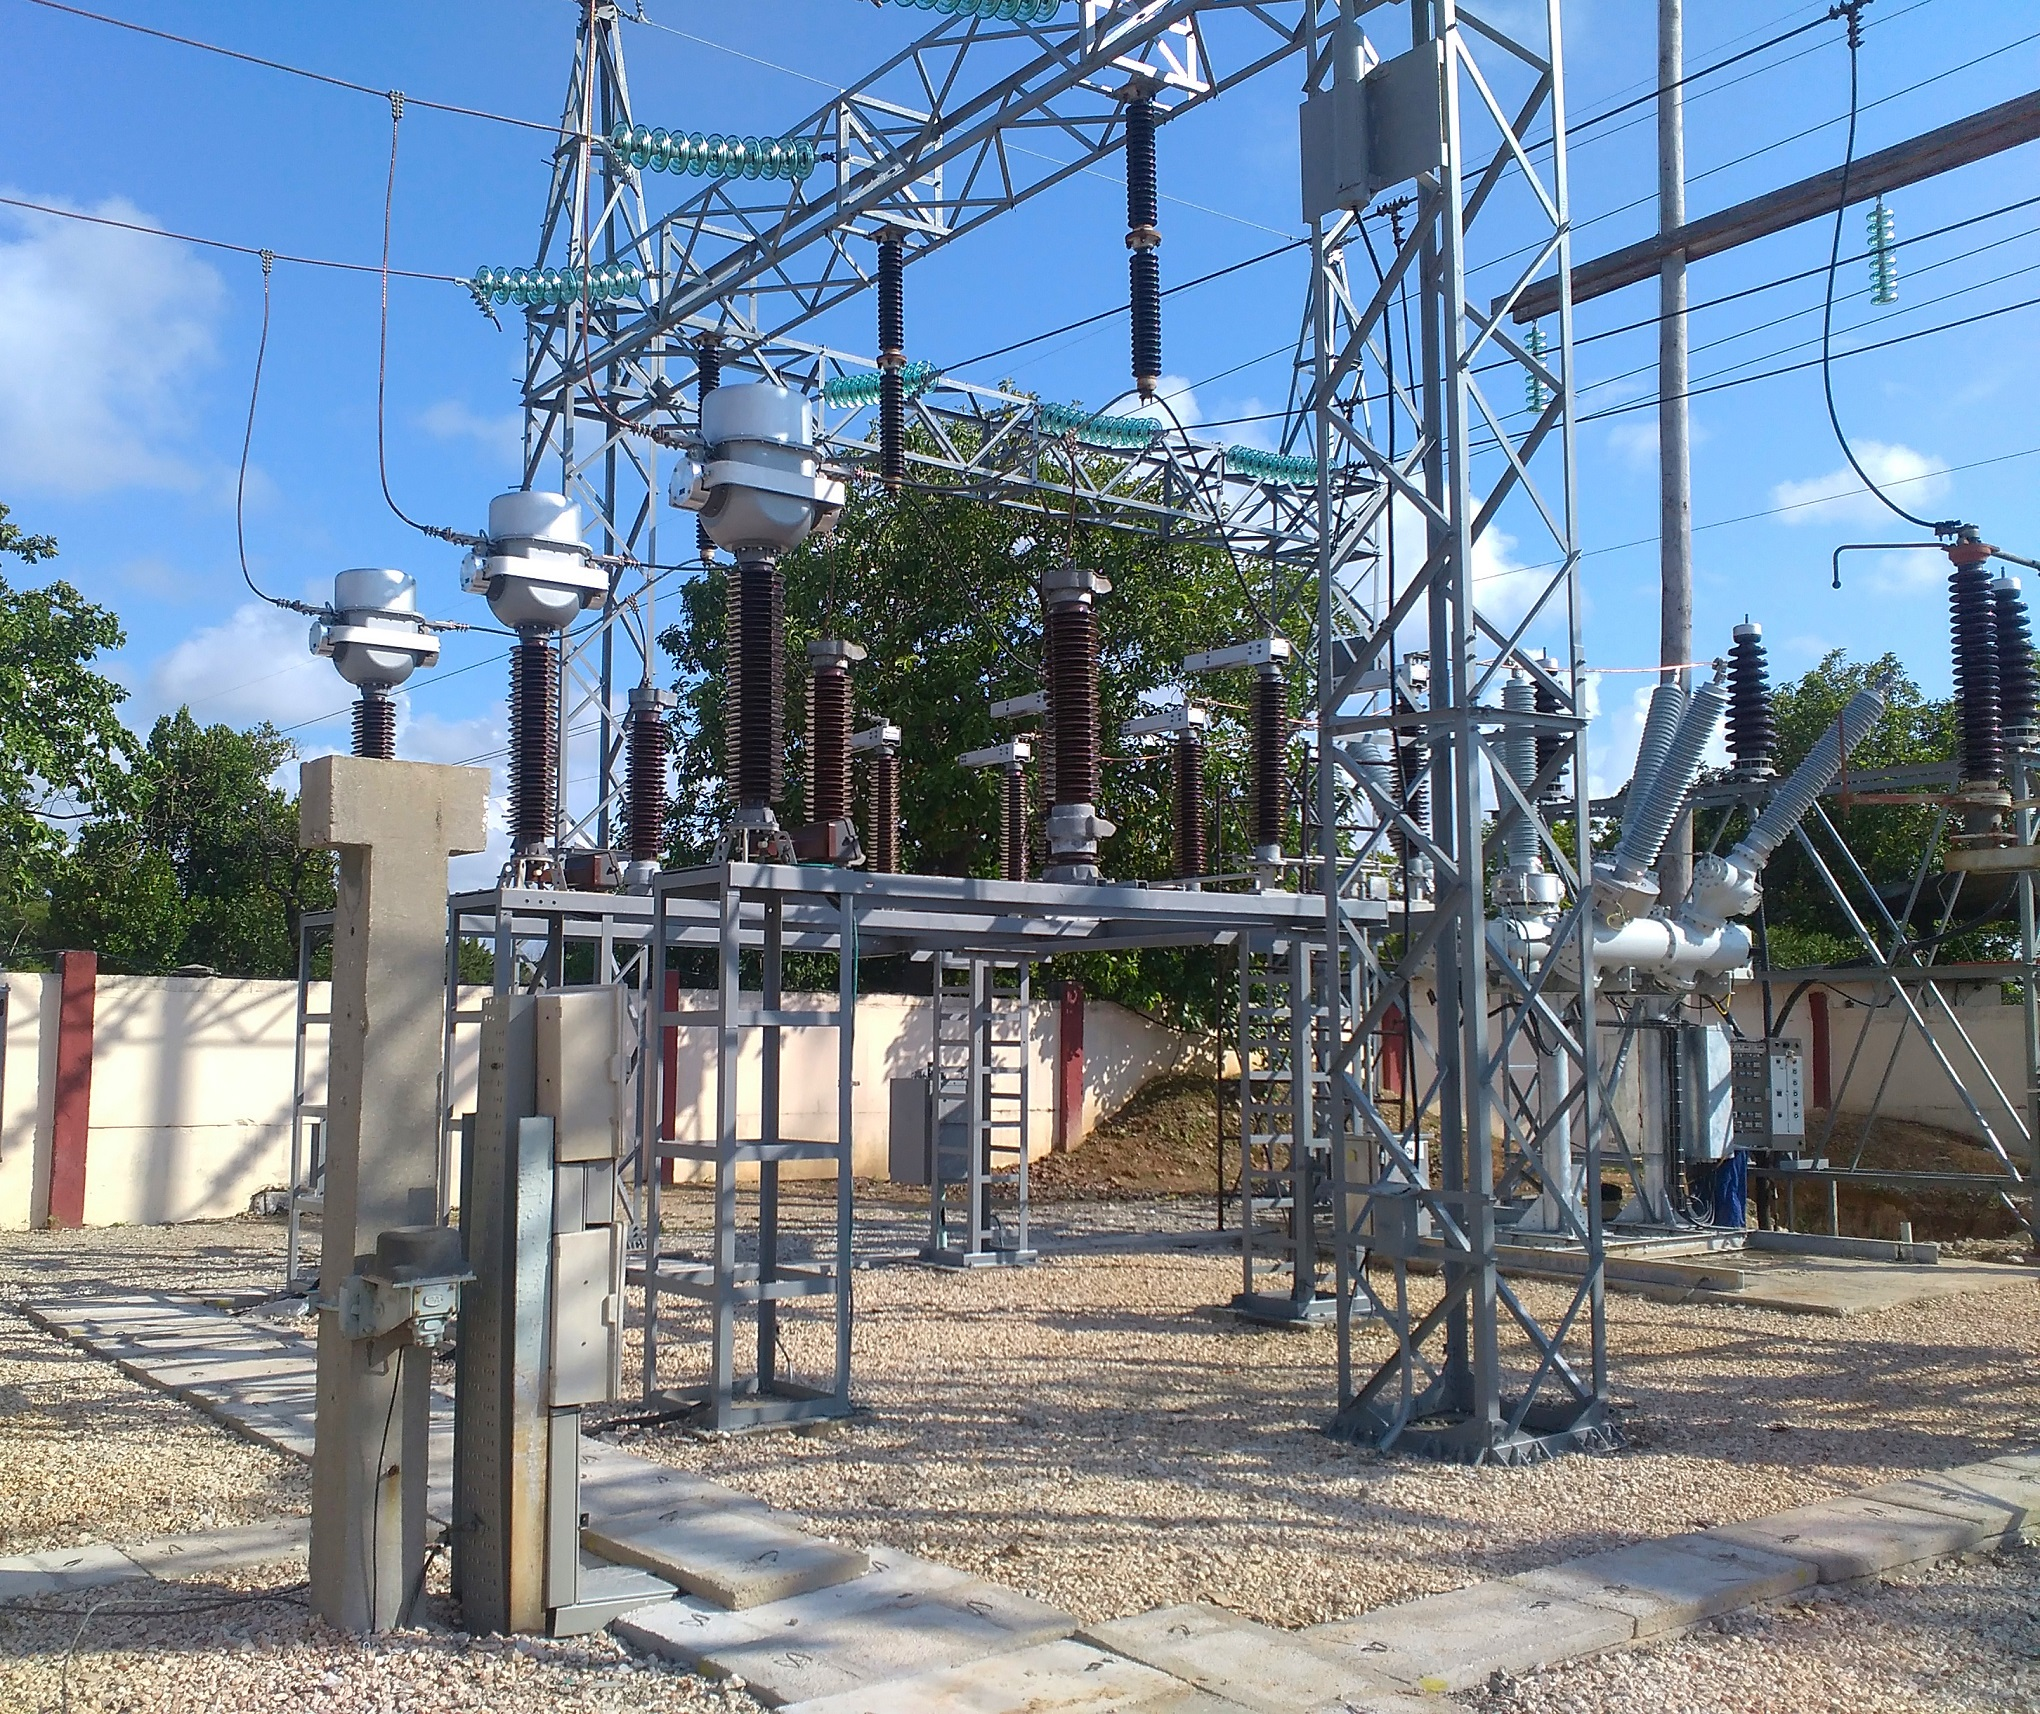 Electrical substation in Cuba